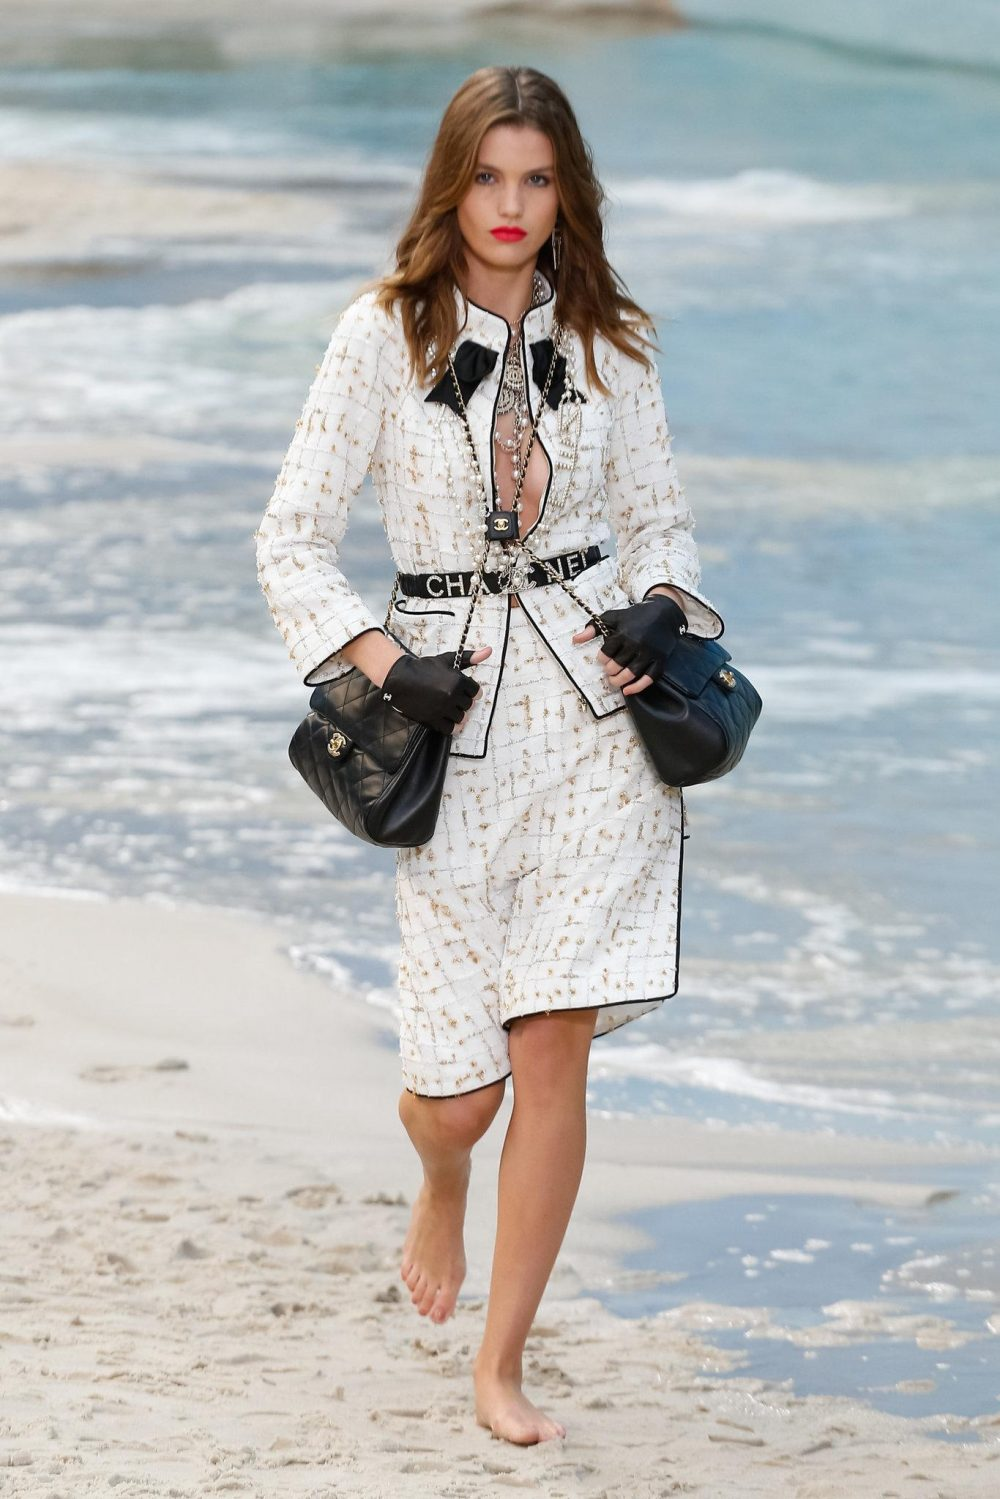 Chanel S Beach Runway Apparel